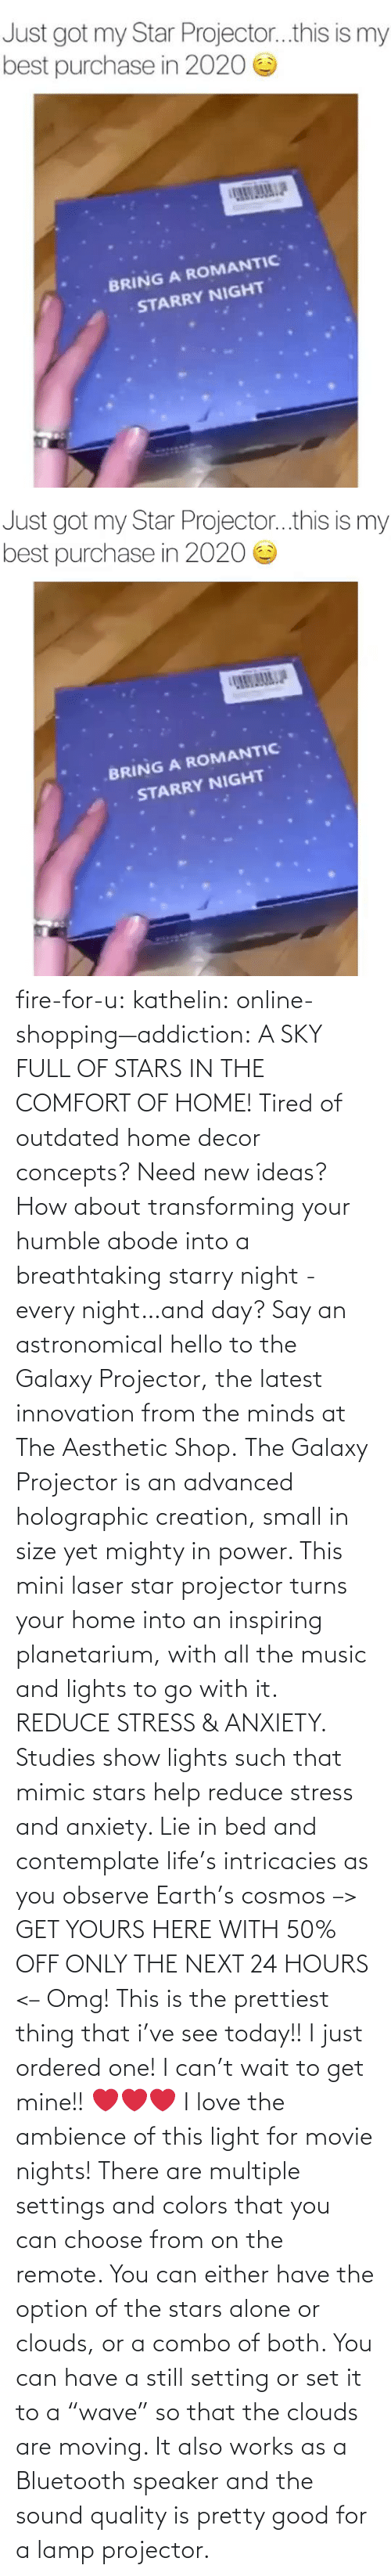 "choose: fire-for-u:  kathelin: online-shopping—addiction:  A SKY FULL OF STARS IN THE COMFORT OF HOME! Tired of outdated home decor concepts? Need new ideas? How about transforming your humble abode into a breathtaking starry night - every night…and day? Say an astronomical hello to the Galaxy Projector, the latest innovation from the minds at The Aesthetic Shop. The Galaxy Projector is an advanced holographic creation, small in size yet mighty in power. This mini laser star projector turns your home into an inspiring planetarium, with all the music and lights to go with it. REDUCE STRESS & ANXIETY. Studies show lights such that mimic stars help reduce stress and anxiety. Lie in bed and contemplate life's intricacies as you observe Earth's cosmos  –> GET YOURS HERE WITH 50% OFF ONLY THE NEXT 24 HOURS <–   Omg! This is the prettiest thing that i've see today!! I just ordered one! I can't wait to get mine!! ❤️️❤️️❤️️  I love the ambience of this light for movie nights! There are multiple settings and colors that you can choose from on the remote. You can either have the option of the stars alone or clouds, or a combo of both. You can have a still setting or set it to a ""wave"" so that the clouds are moving. It also works as a Bluetooth speaker and the sound quality is pretty good for a lamp projector."